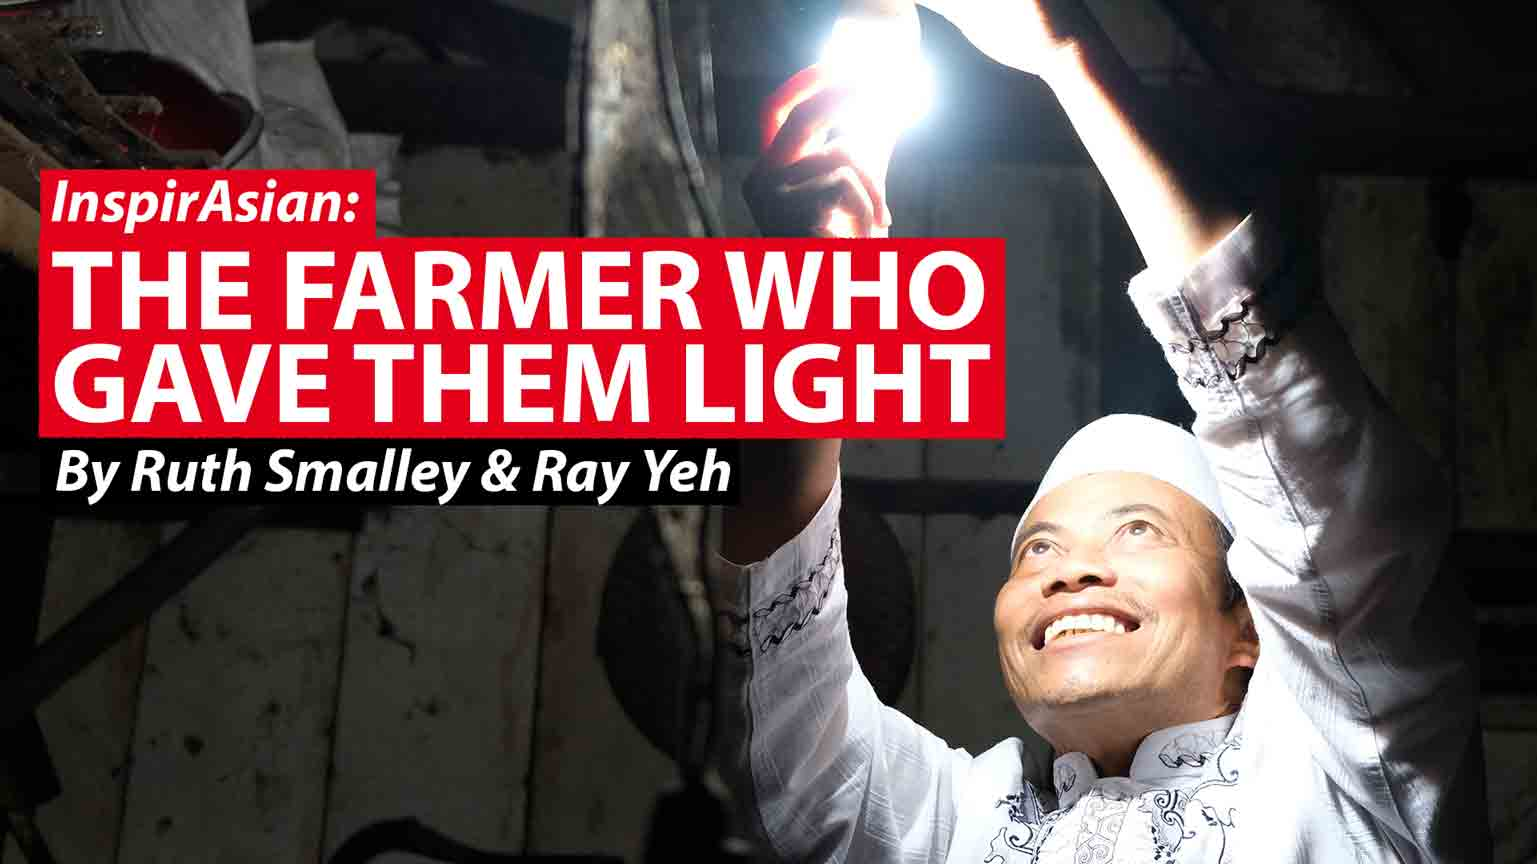 The farmer who gave them light: One man's dream electrifies his village